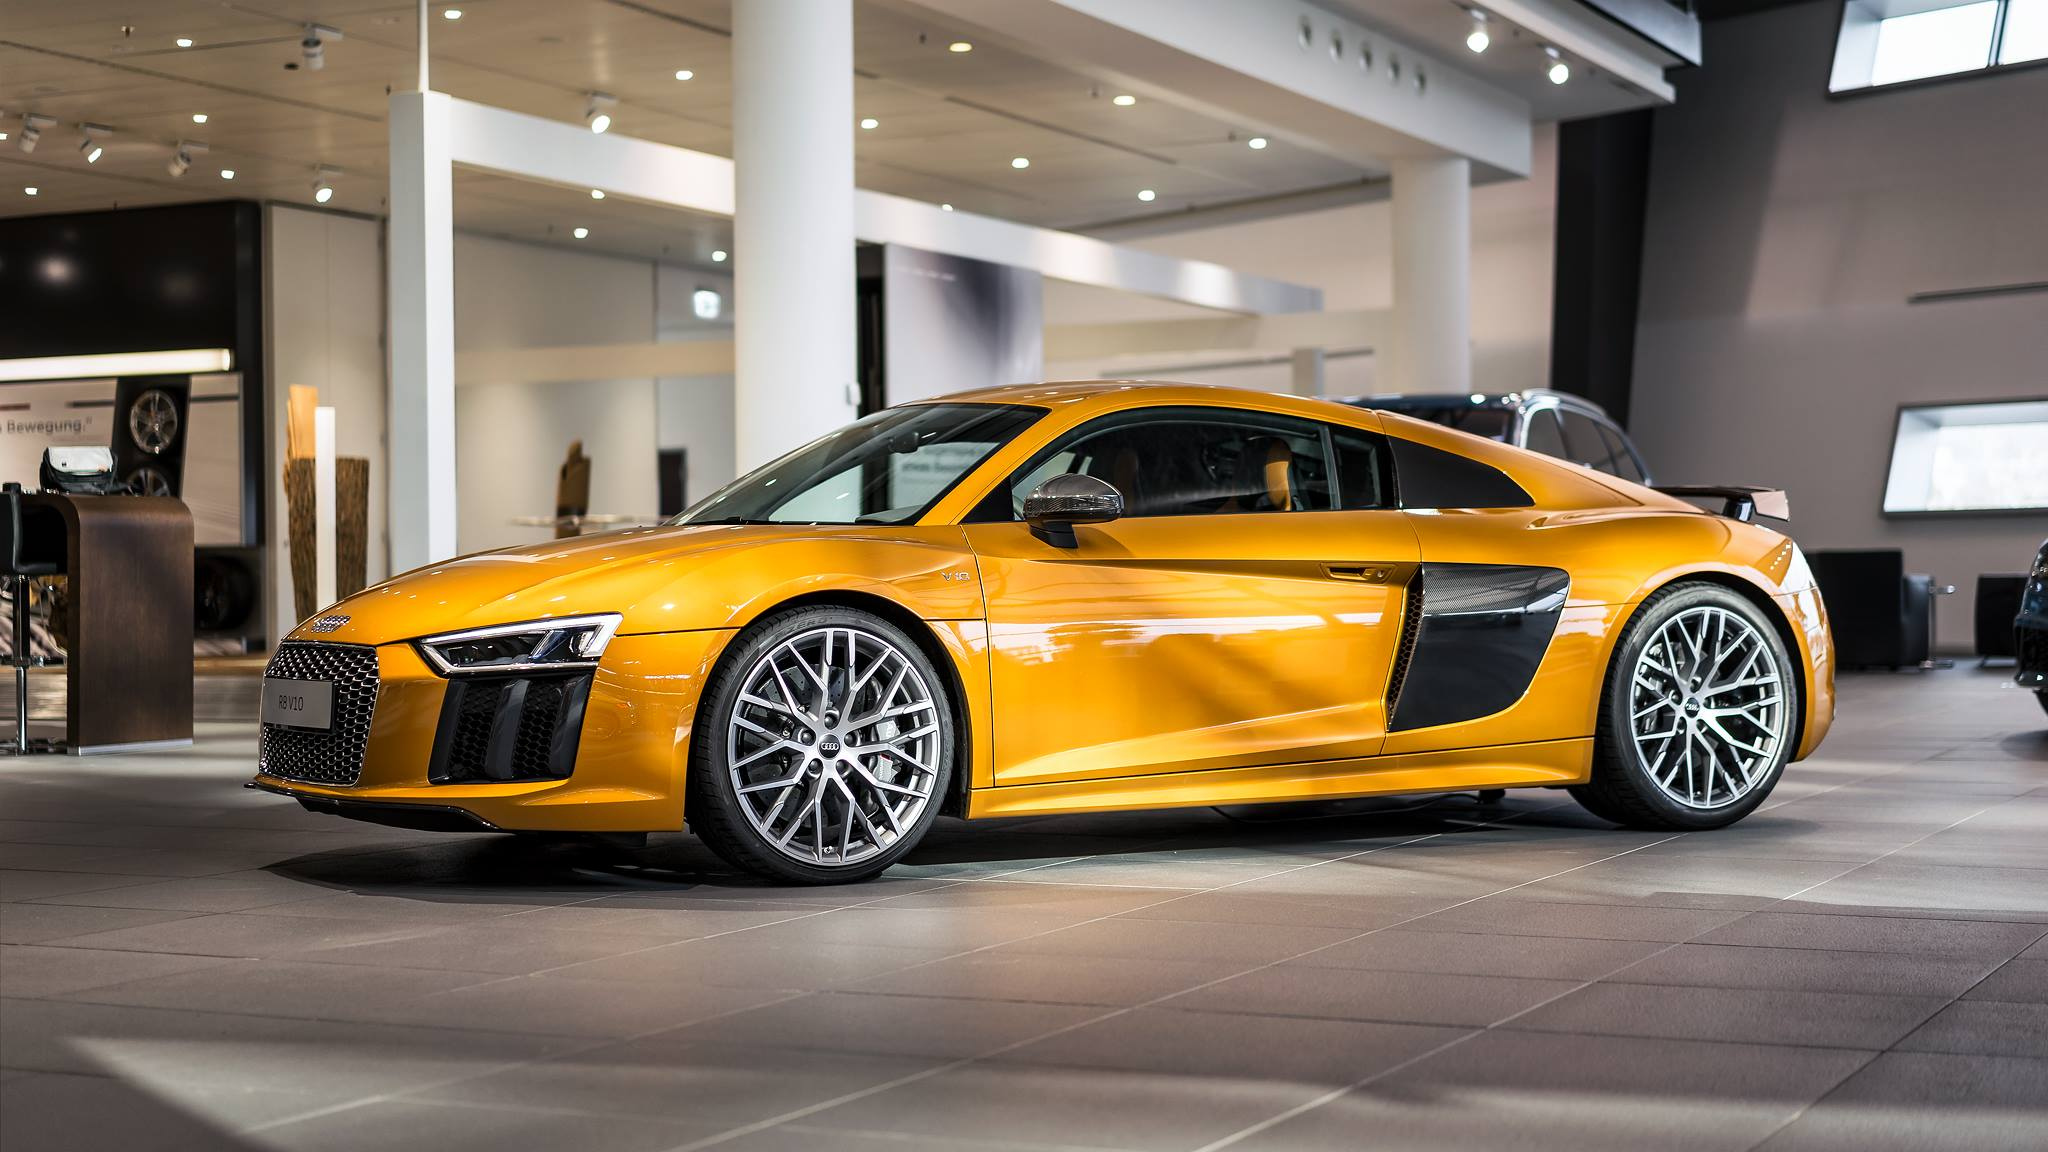 Orange Perleffekt Audi R8 V10 Plus by Audi Exclusive - GTspirit